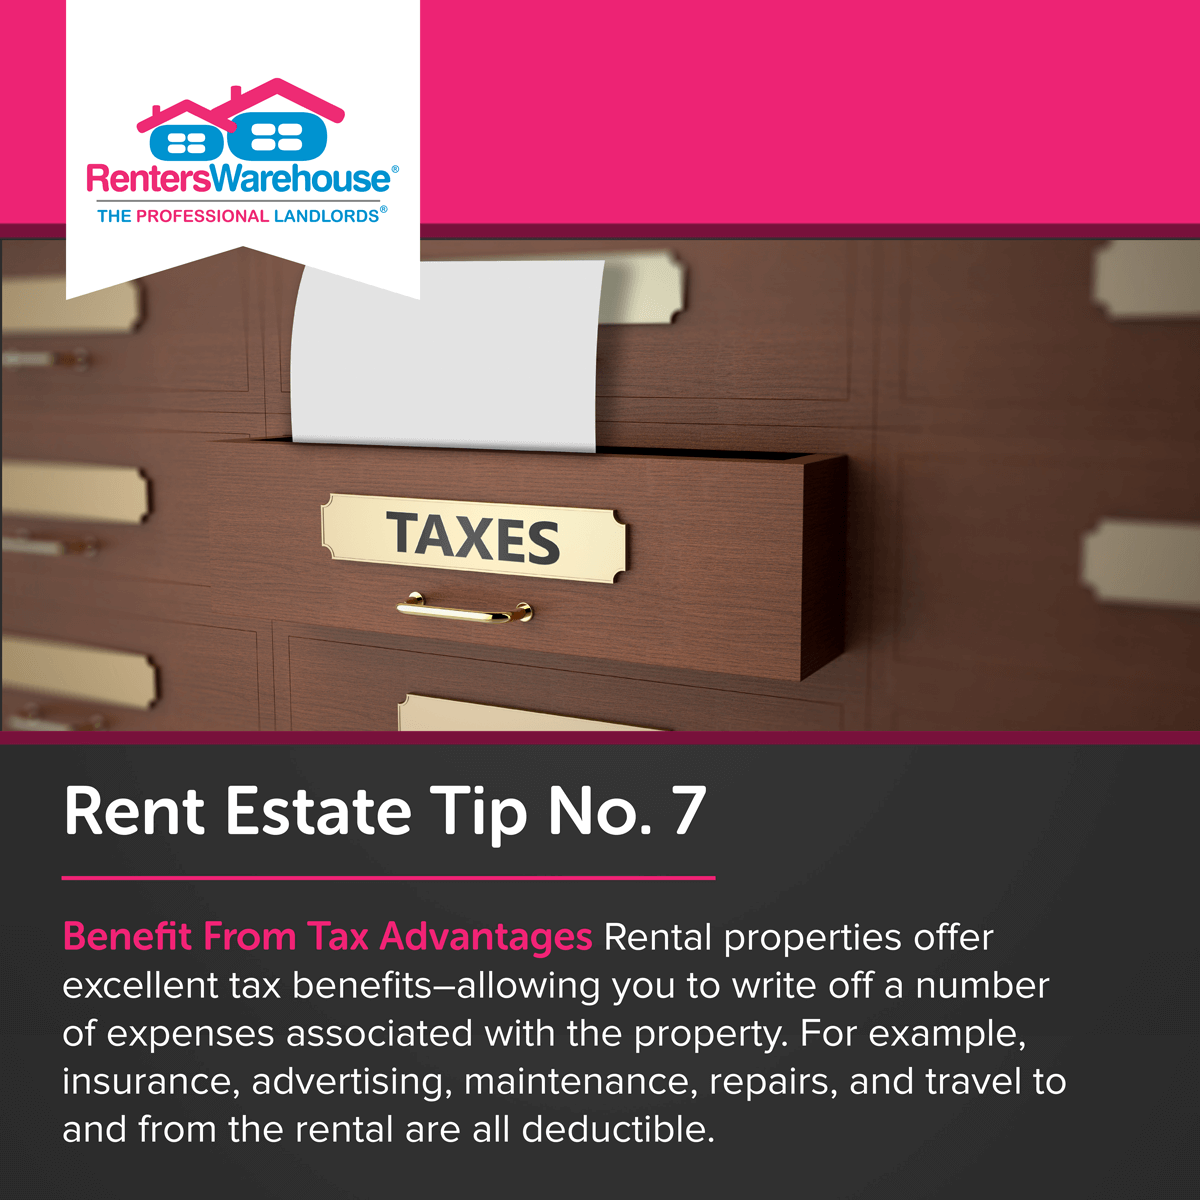 Image related to Rent Estate™ Tip No. 7 - Benefit From Tax Advantages